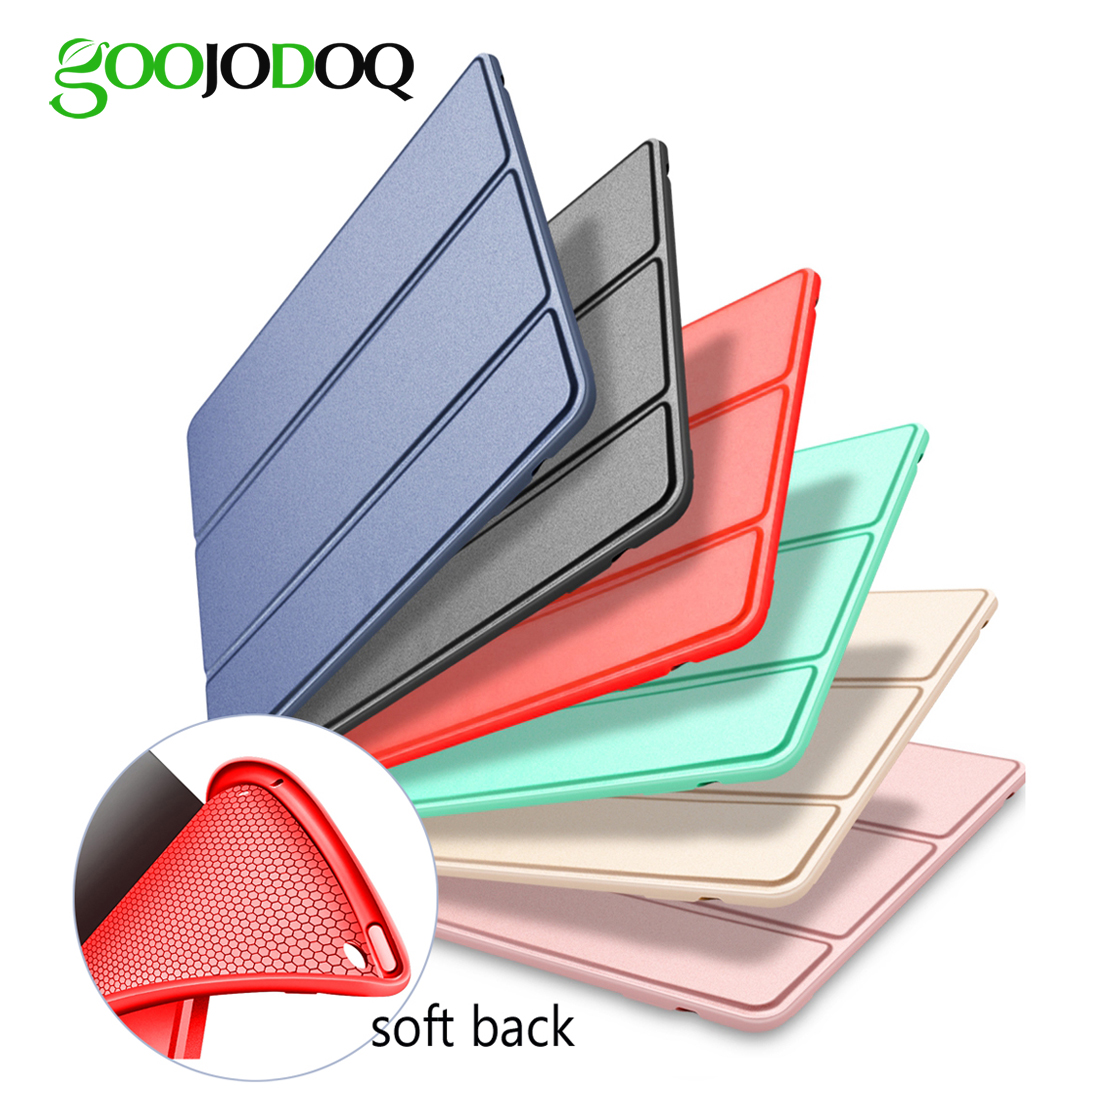 For iPad Air 2 Air 1 Case Silicone Soft Back Slim Pu Leather Smart Cover Case for Apple iPad Air 2 1 Case Auto Sleep / Wake up replacement spare parts beater blades